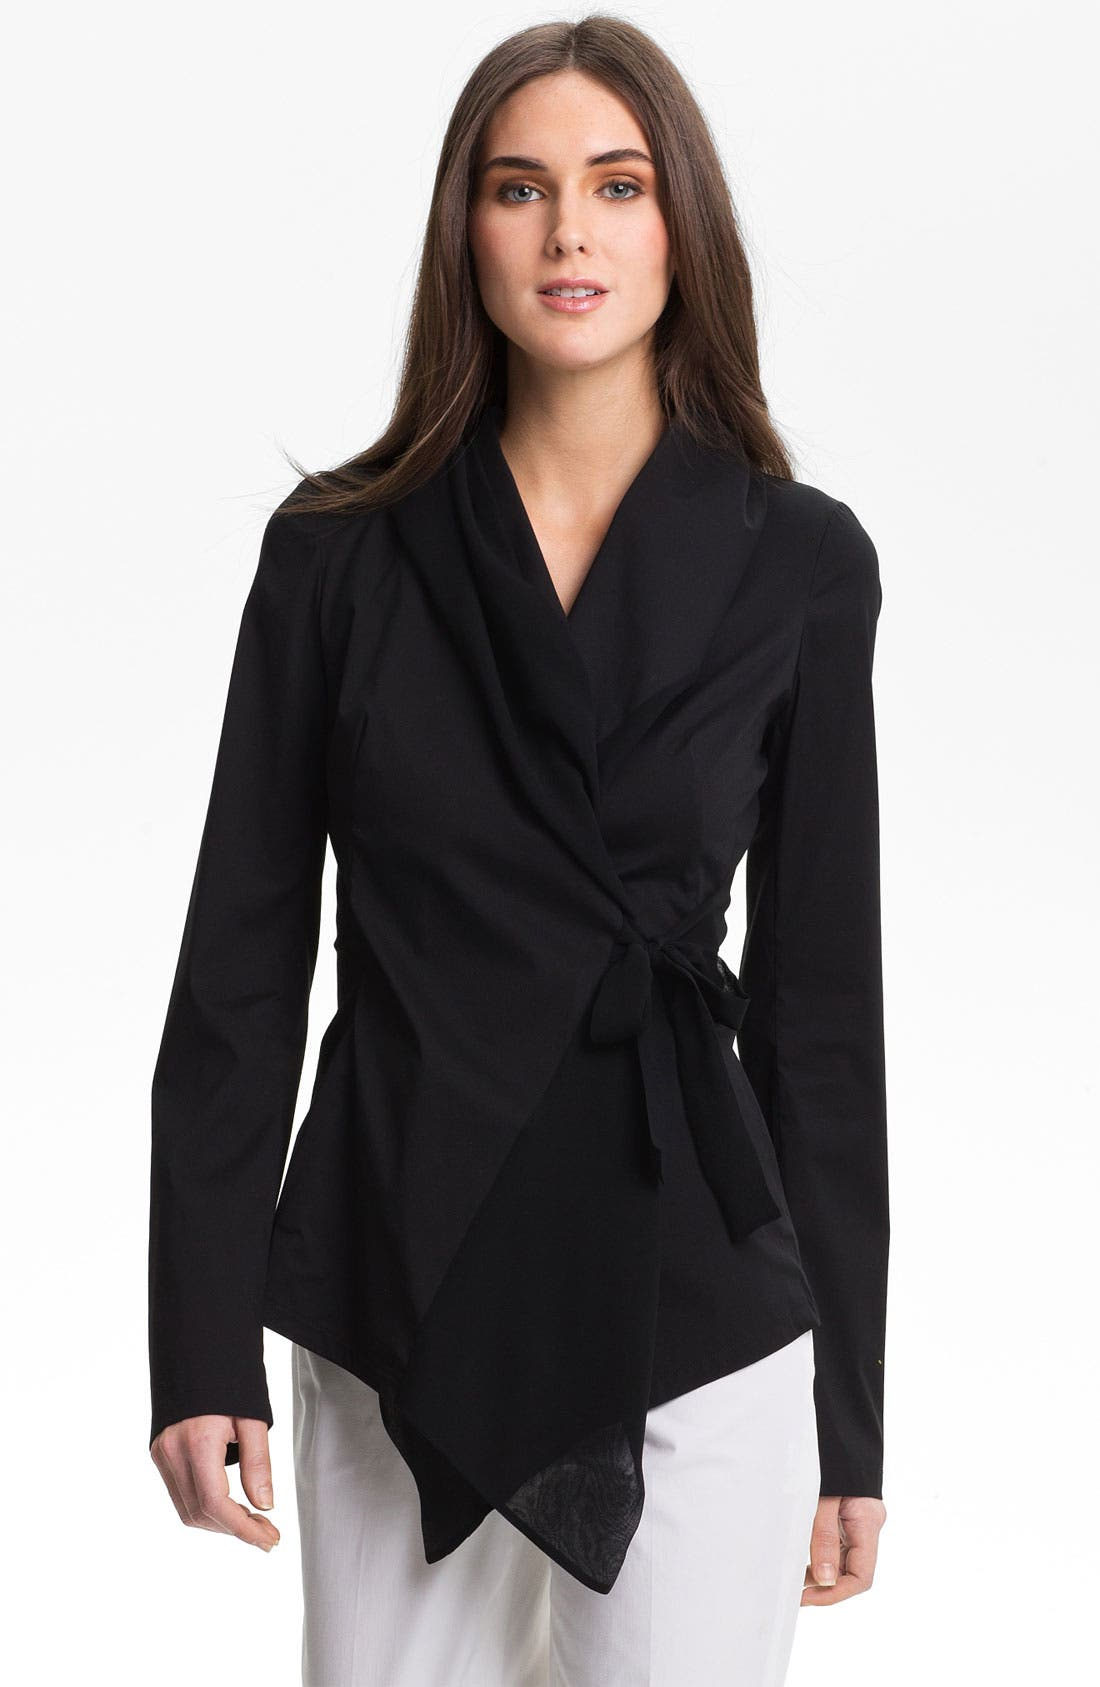 Main Image - Lafayette 148 New York 'Bethany' Italian Stretch Cotton Blend Jacket